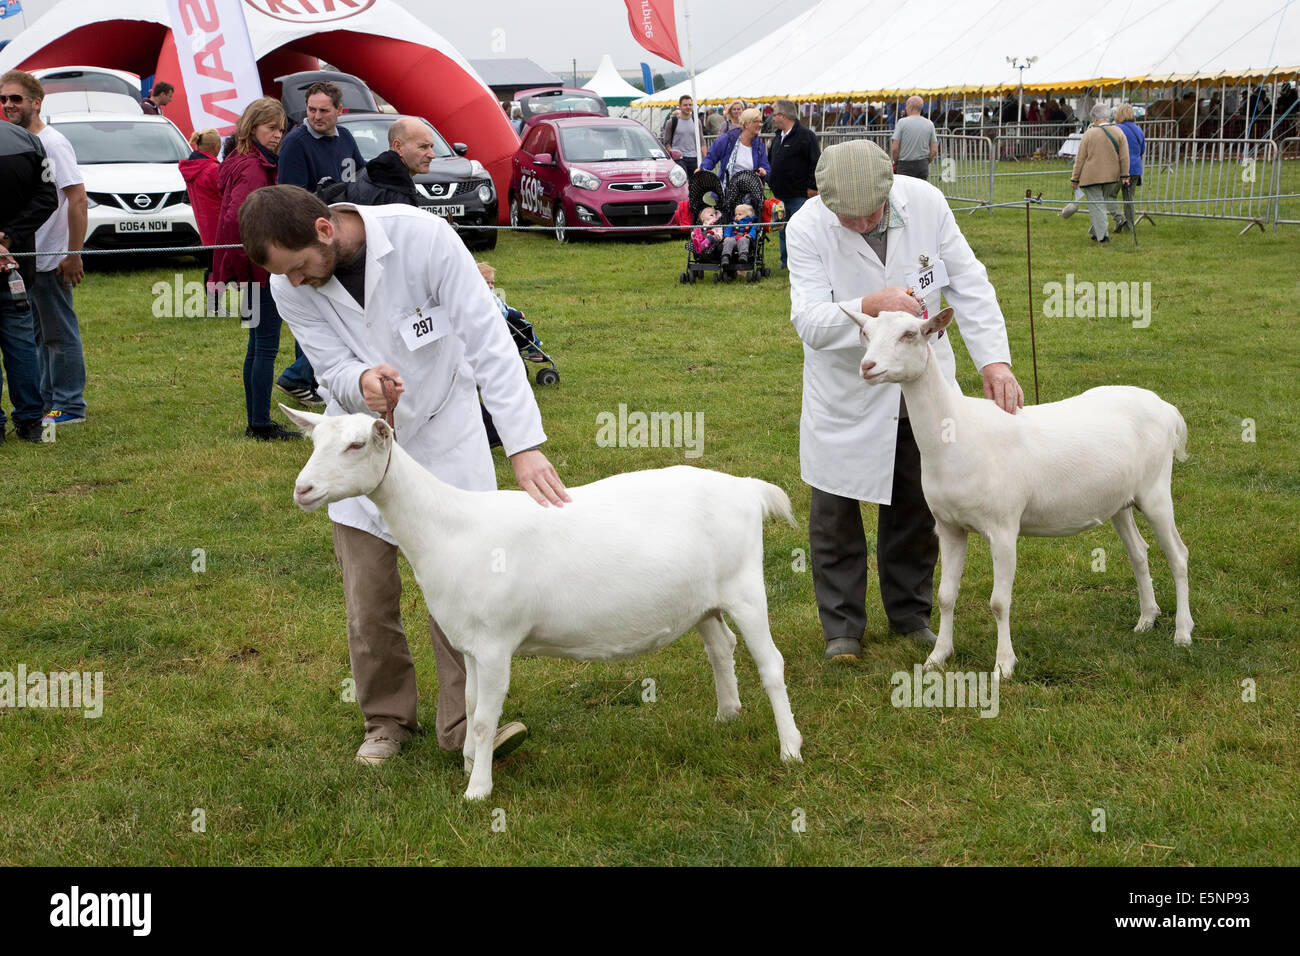 Goat judging competition in large English agricultural and craft show - Stock Image